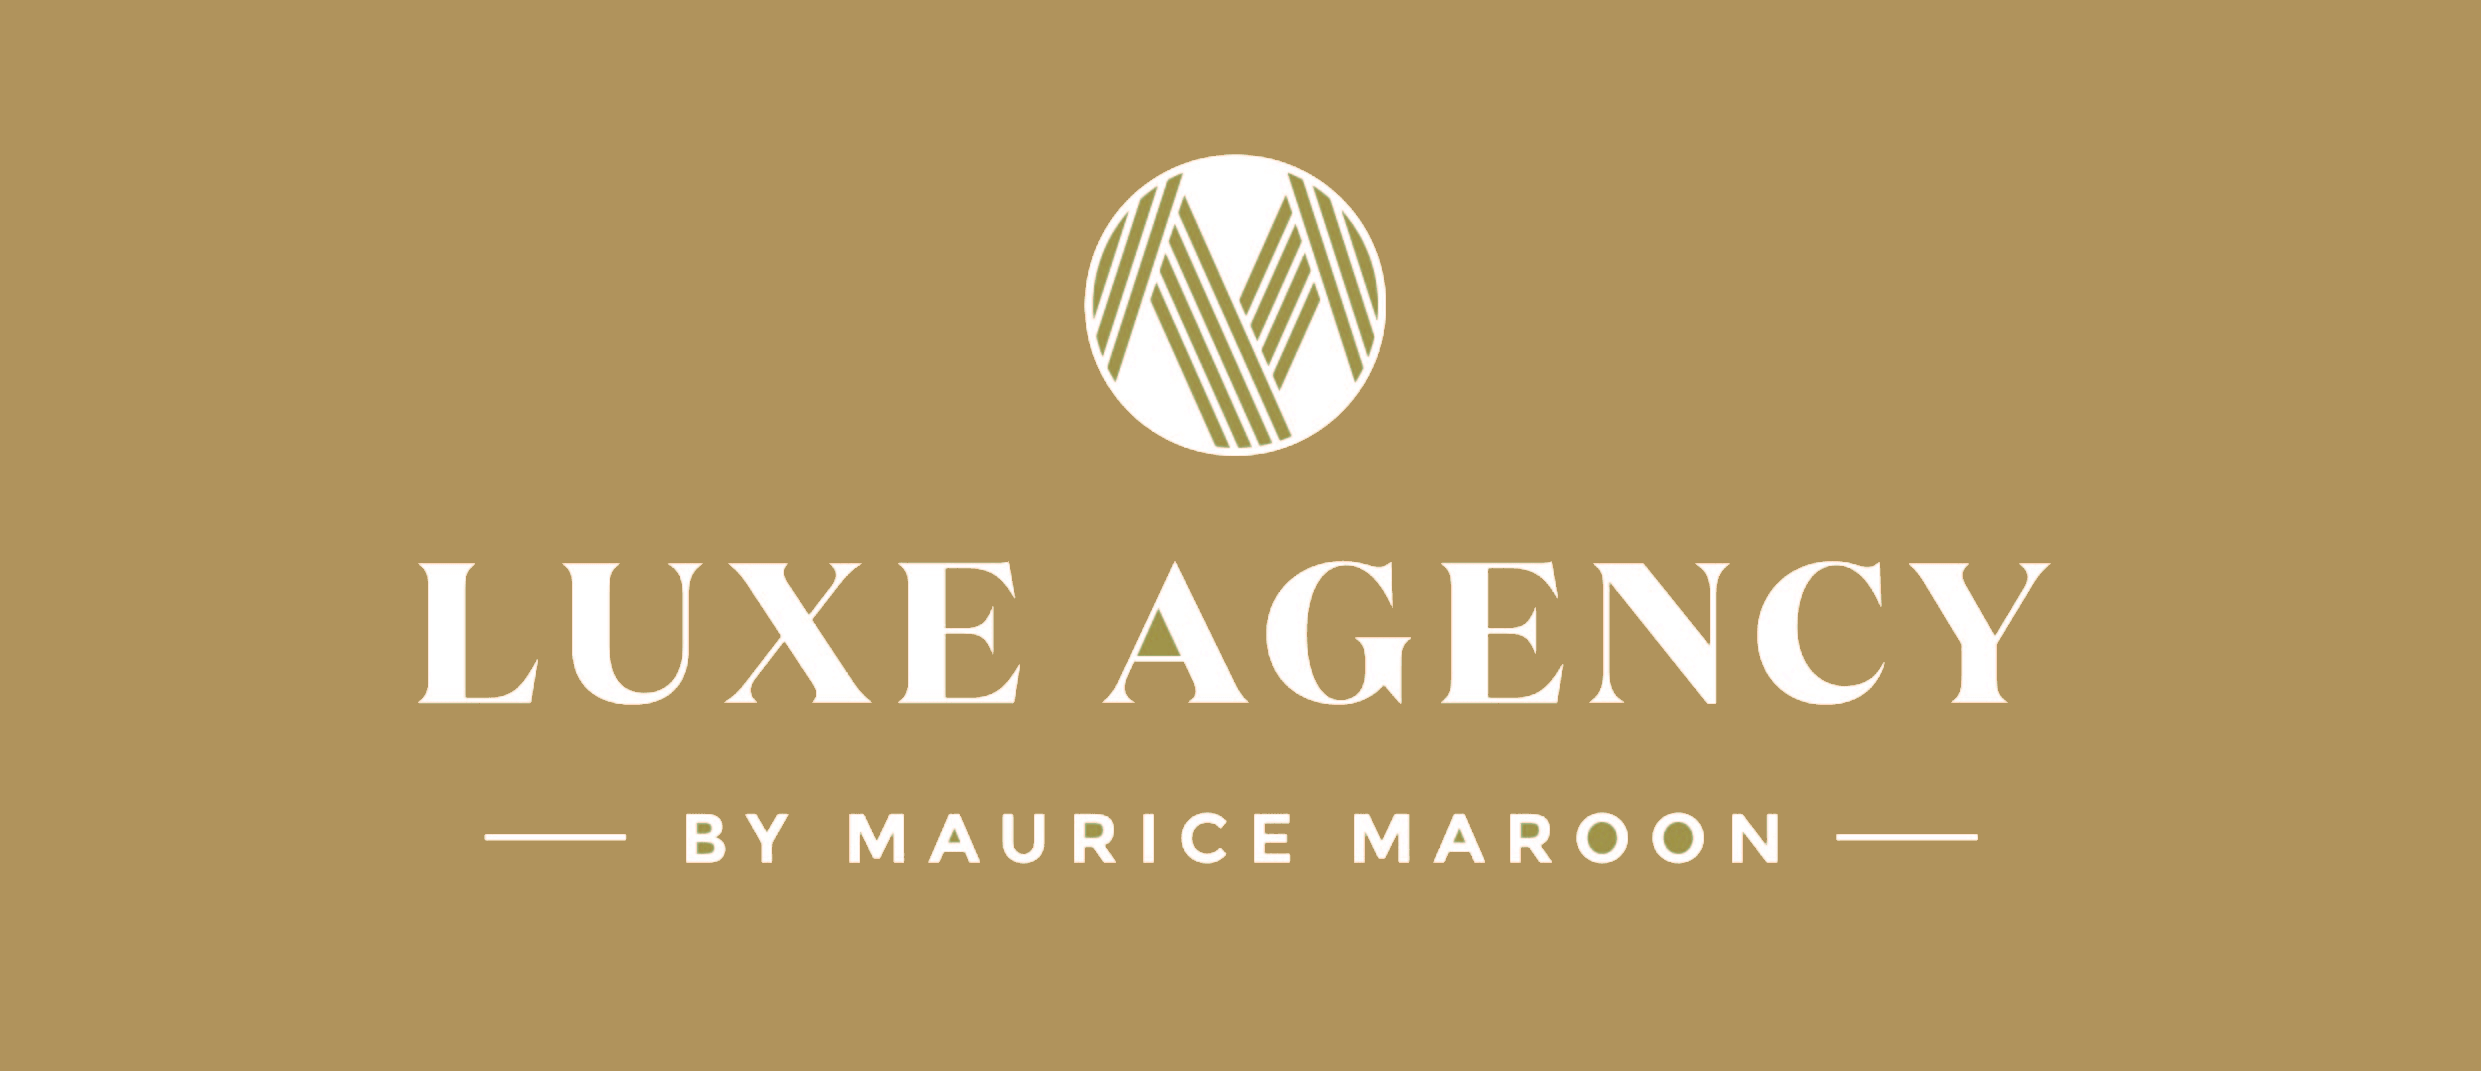 Luxe Agency by Maurice Maroon